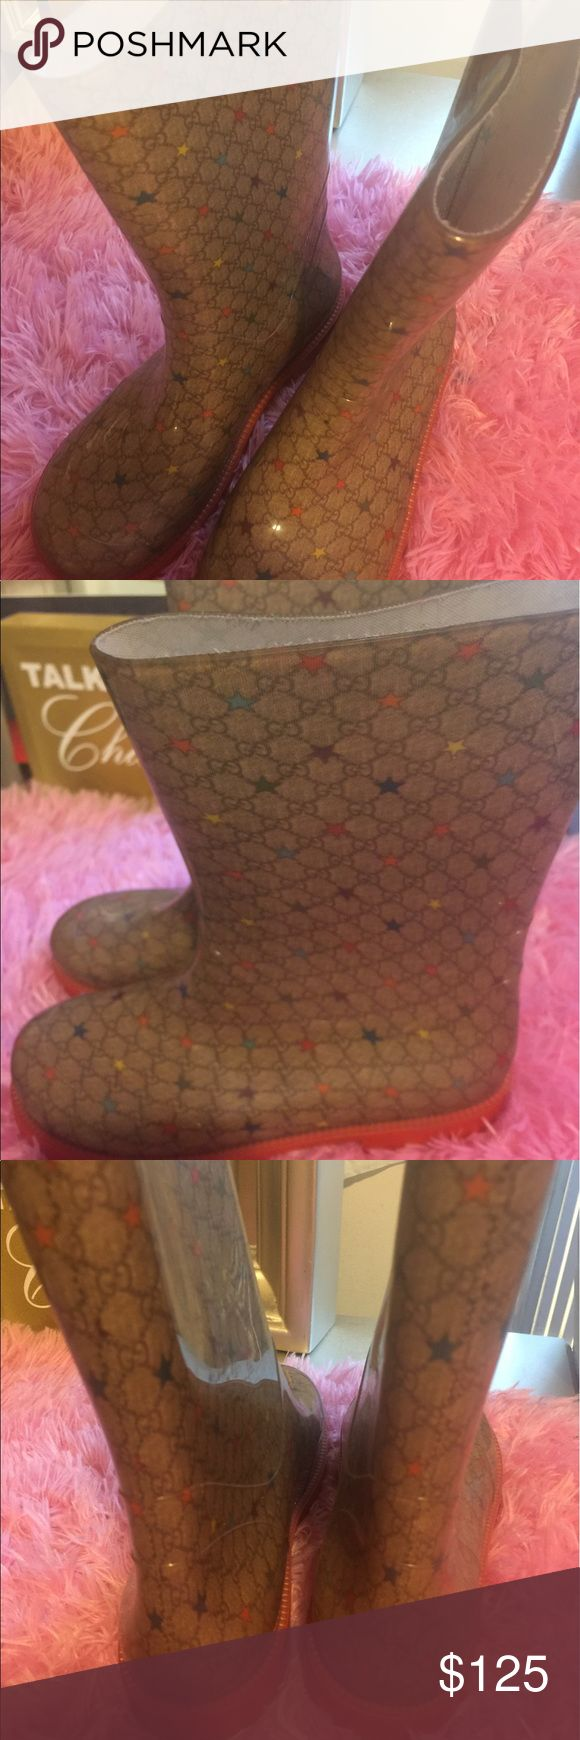 Authentic Gucci Kid Rain Boots sz32 Authentic kid Rain Boots purchased from Gucci store worn a few times perfect condition sz32 equivalent to US sz 3 Gucci Shoes Winter & Rain Boots